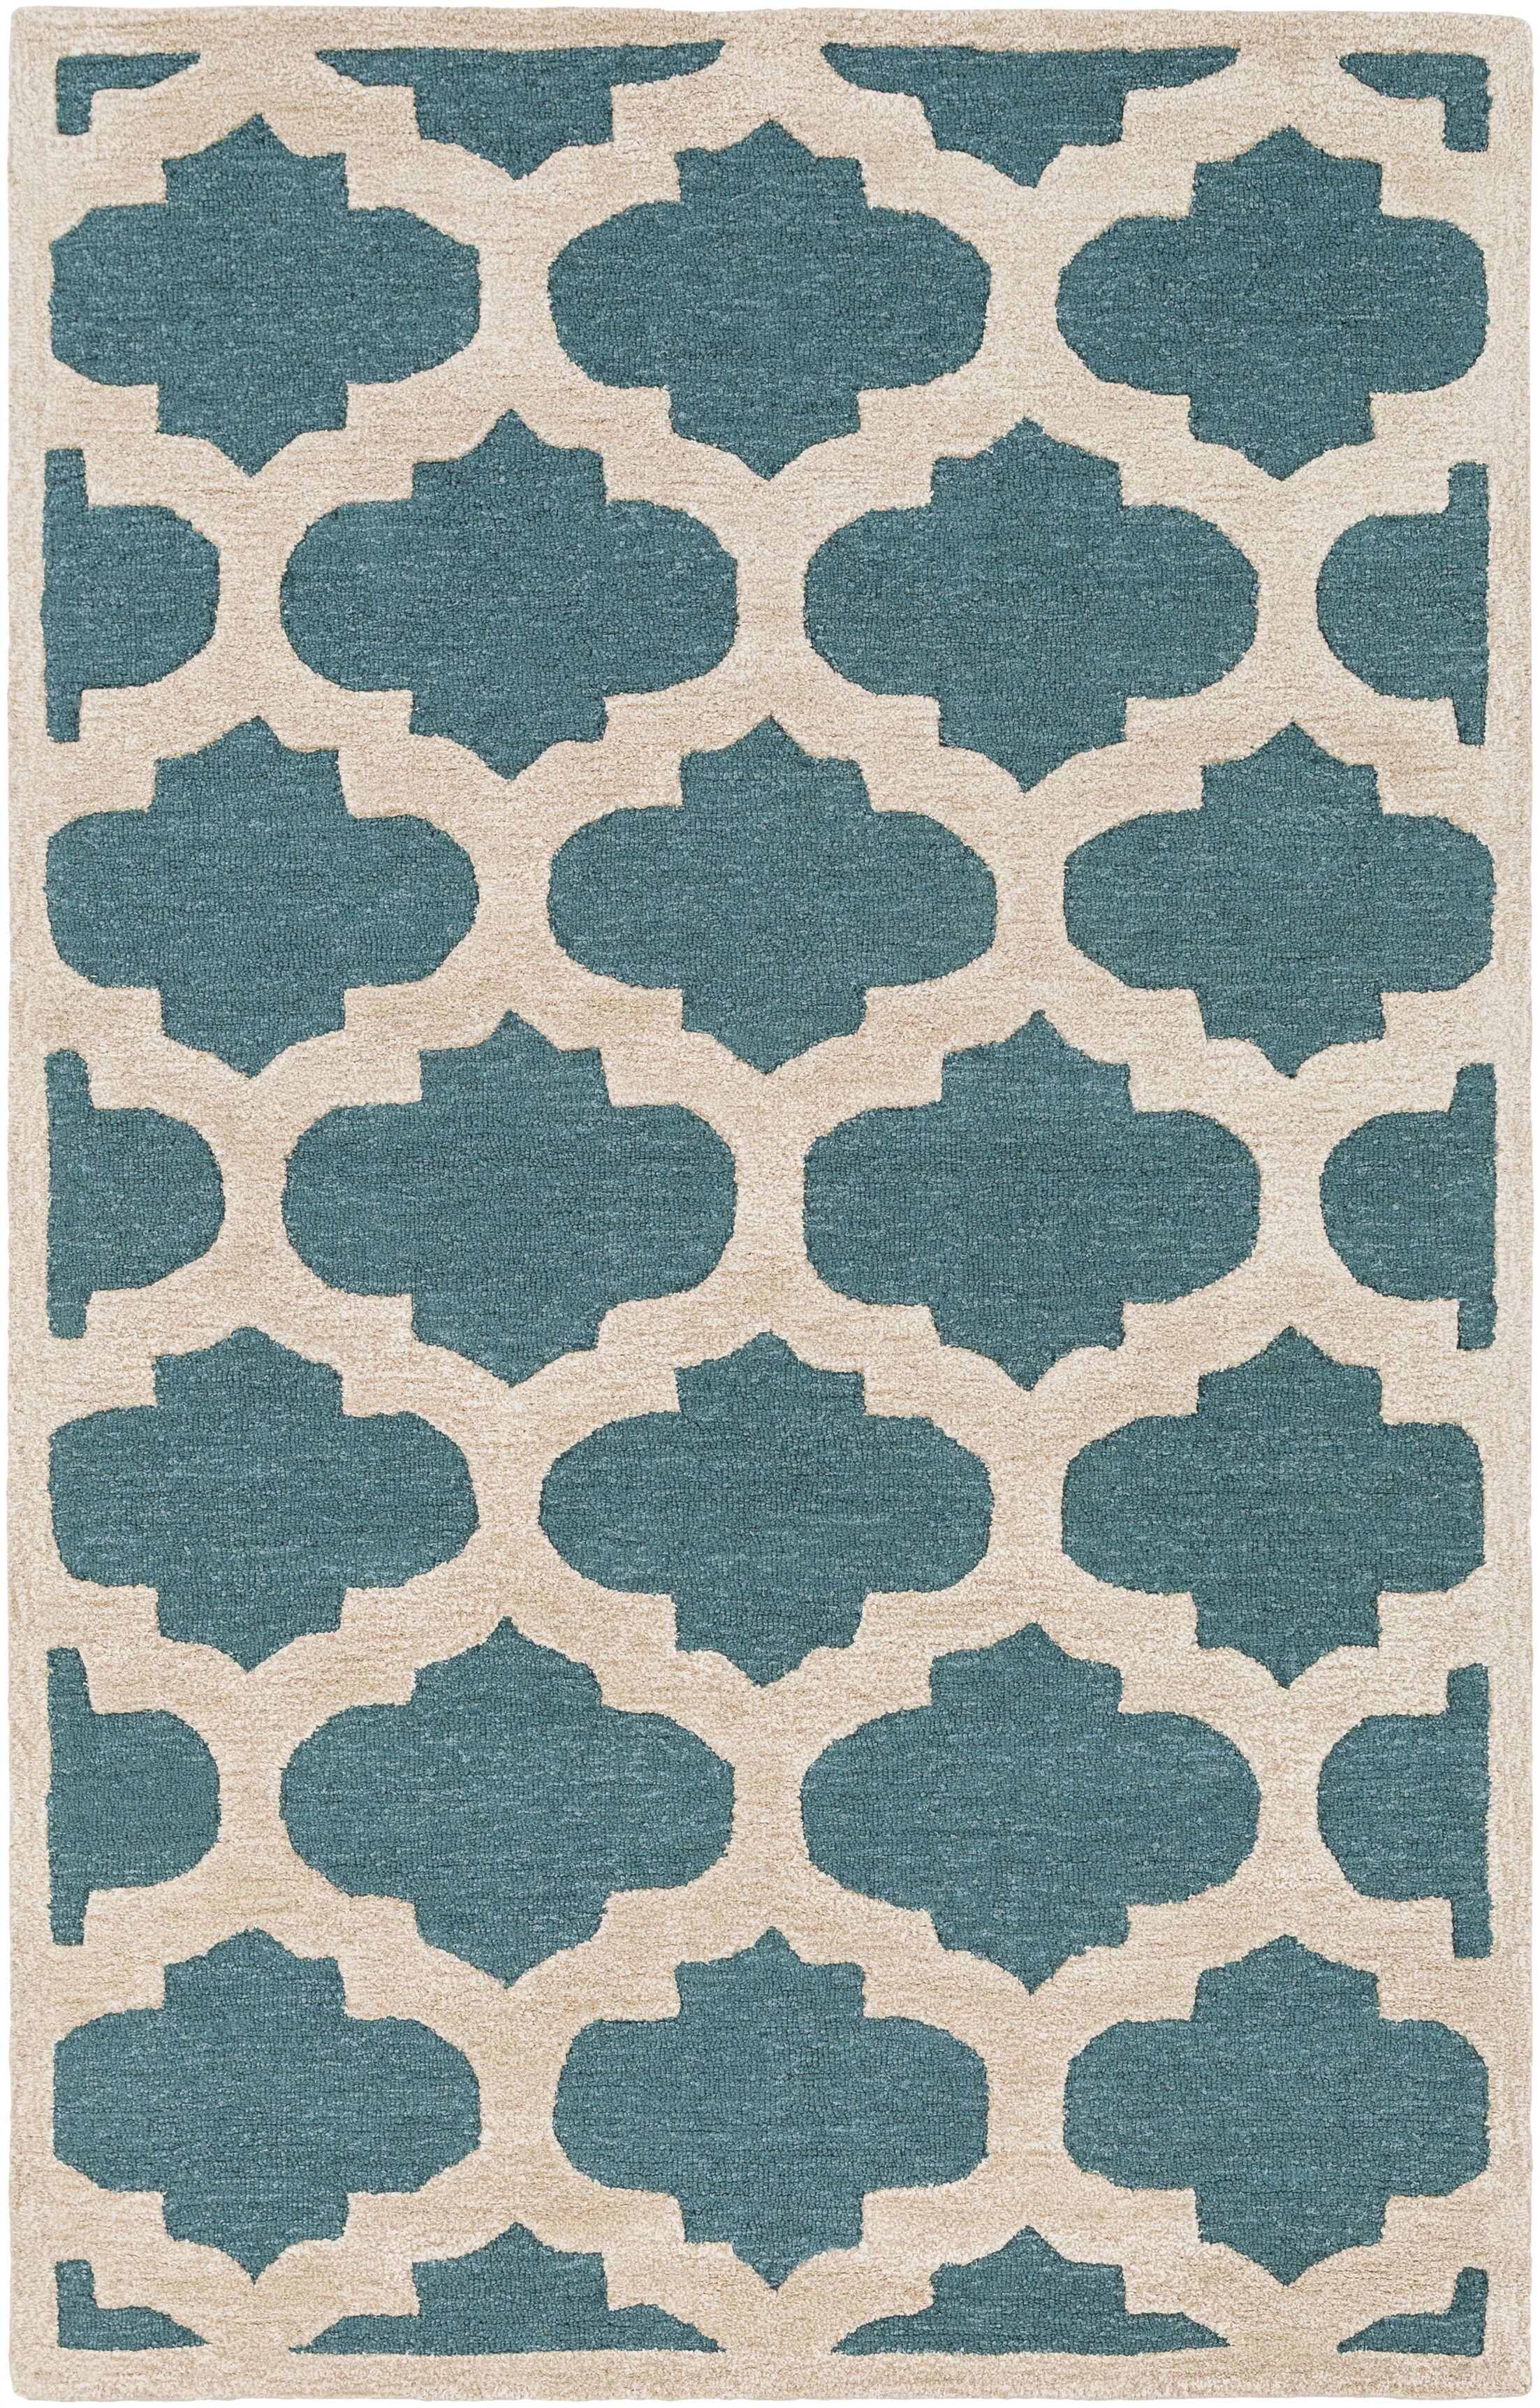 Boise Hand-Tufted Teal Area Rug Rug Size: Runner 2'3